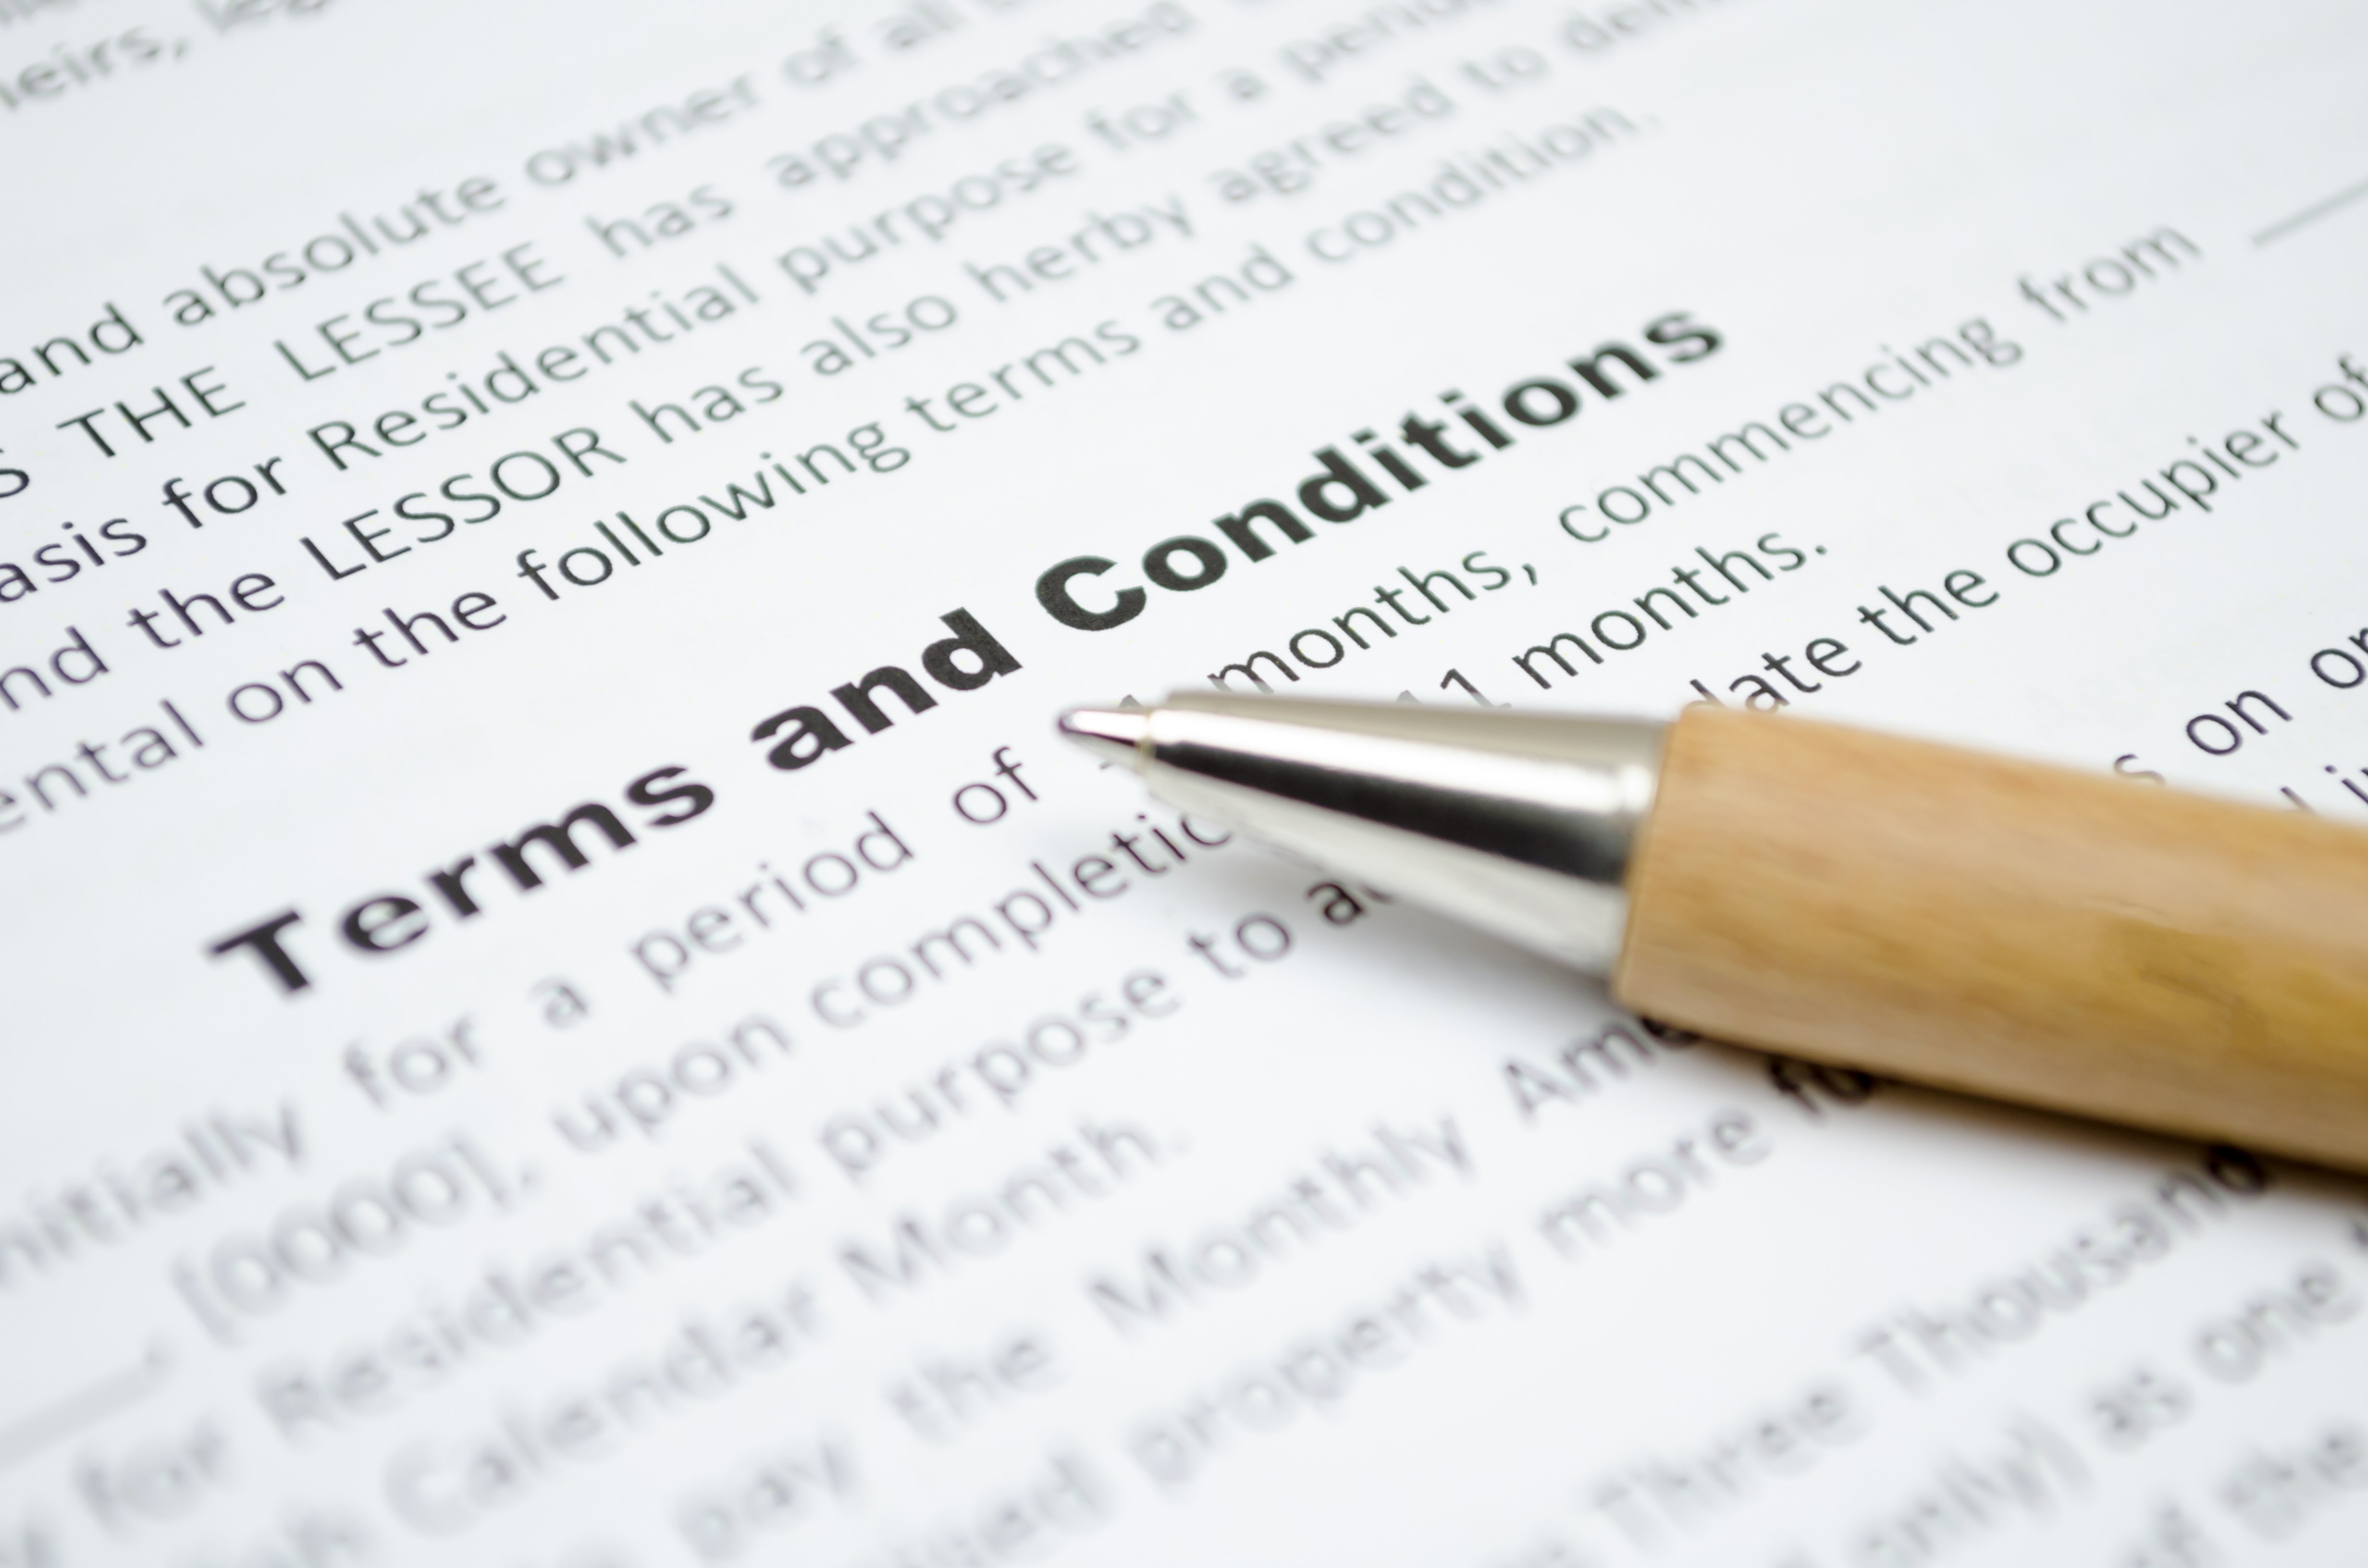 terms and conditions and a pen